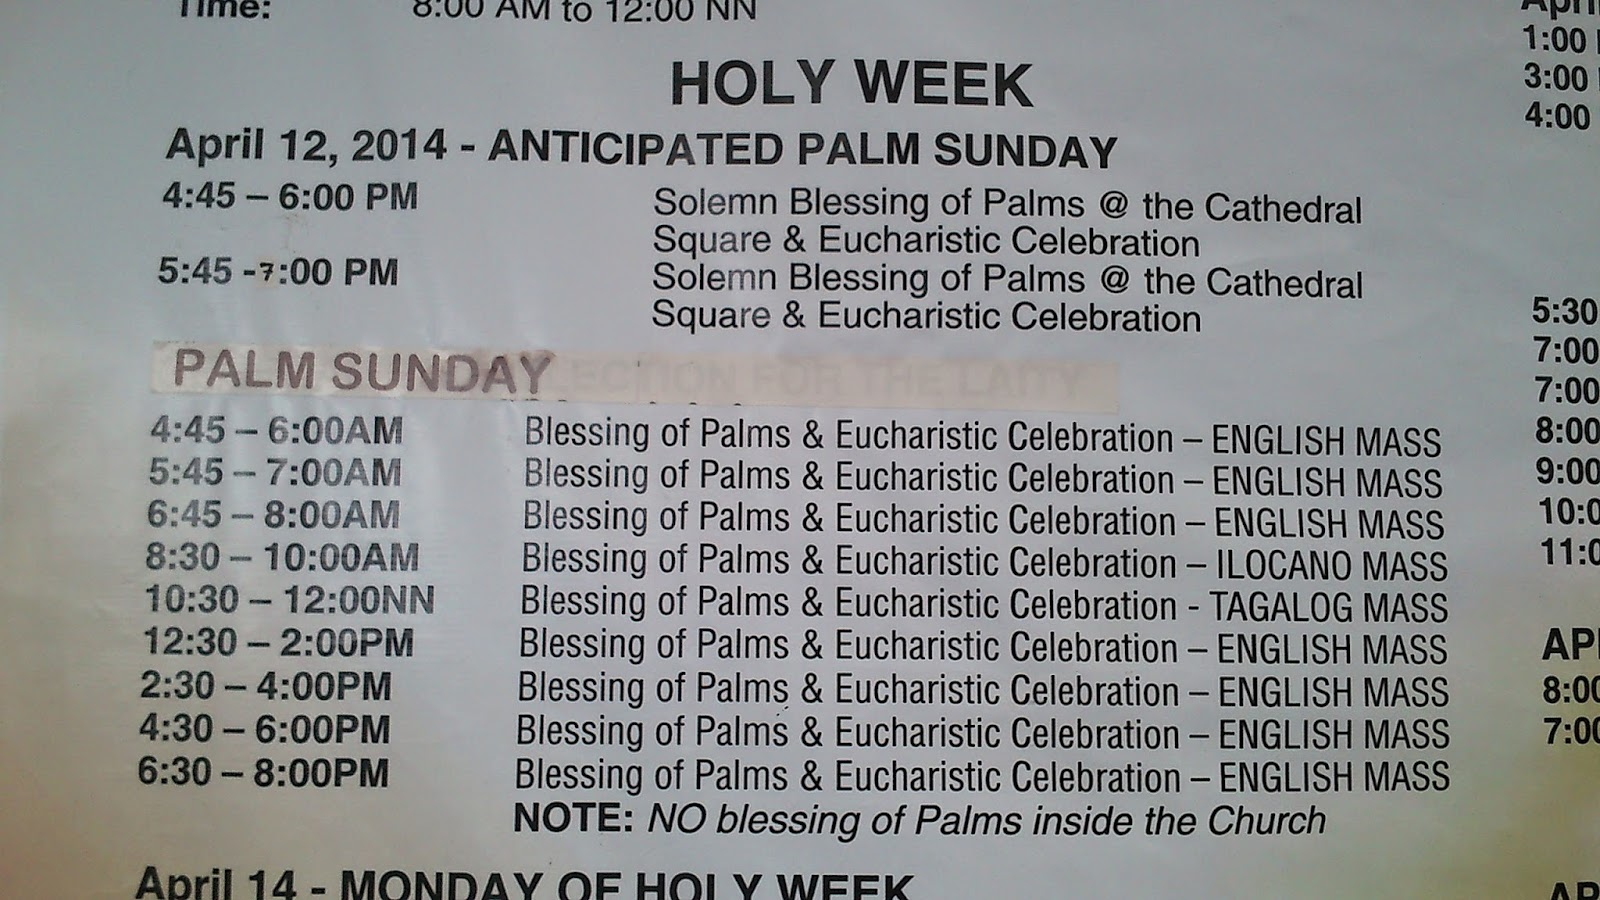 2014 Palm Sunday Schedule at Baguio Cathedral